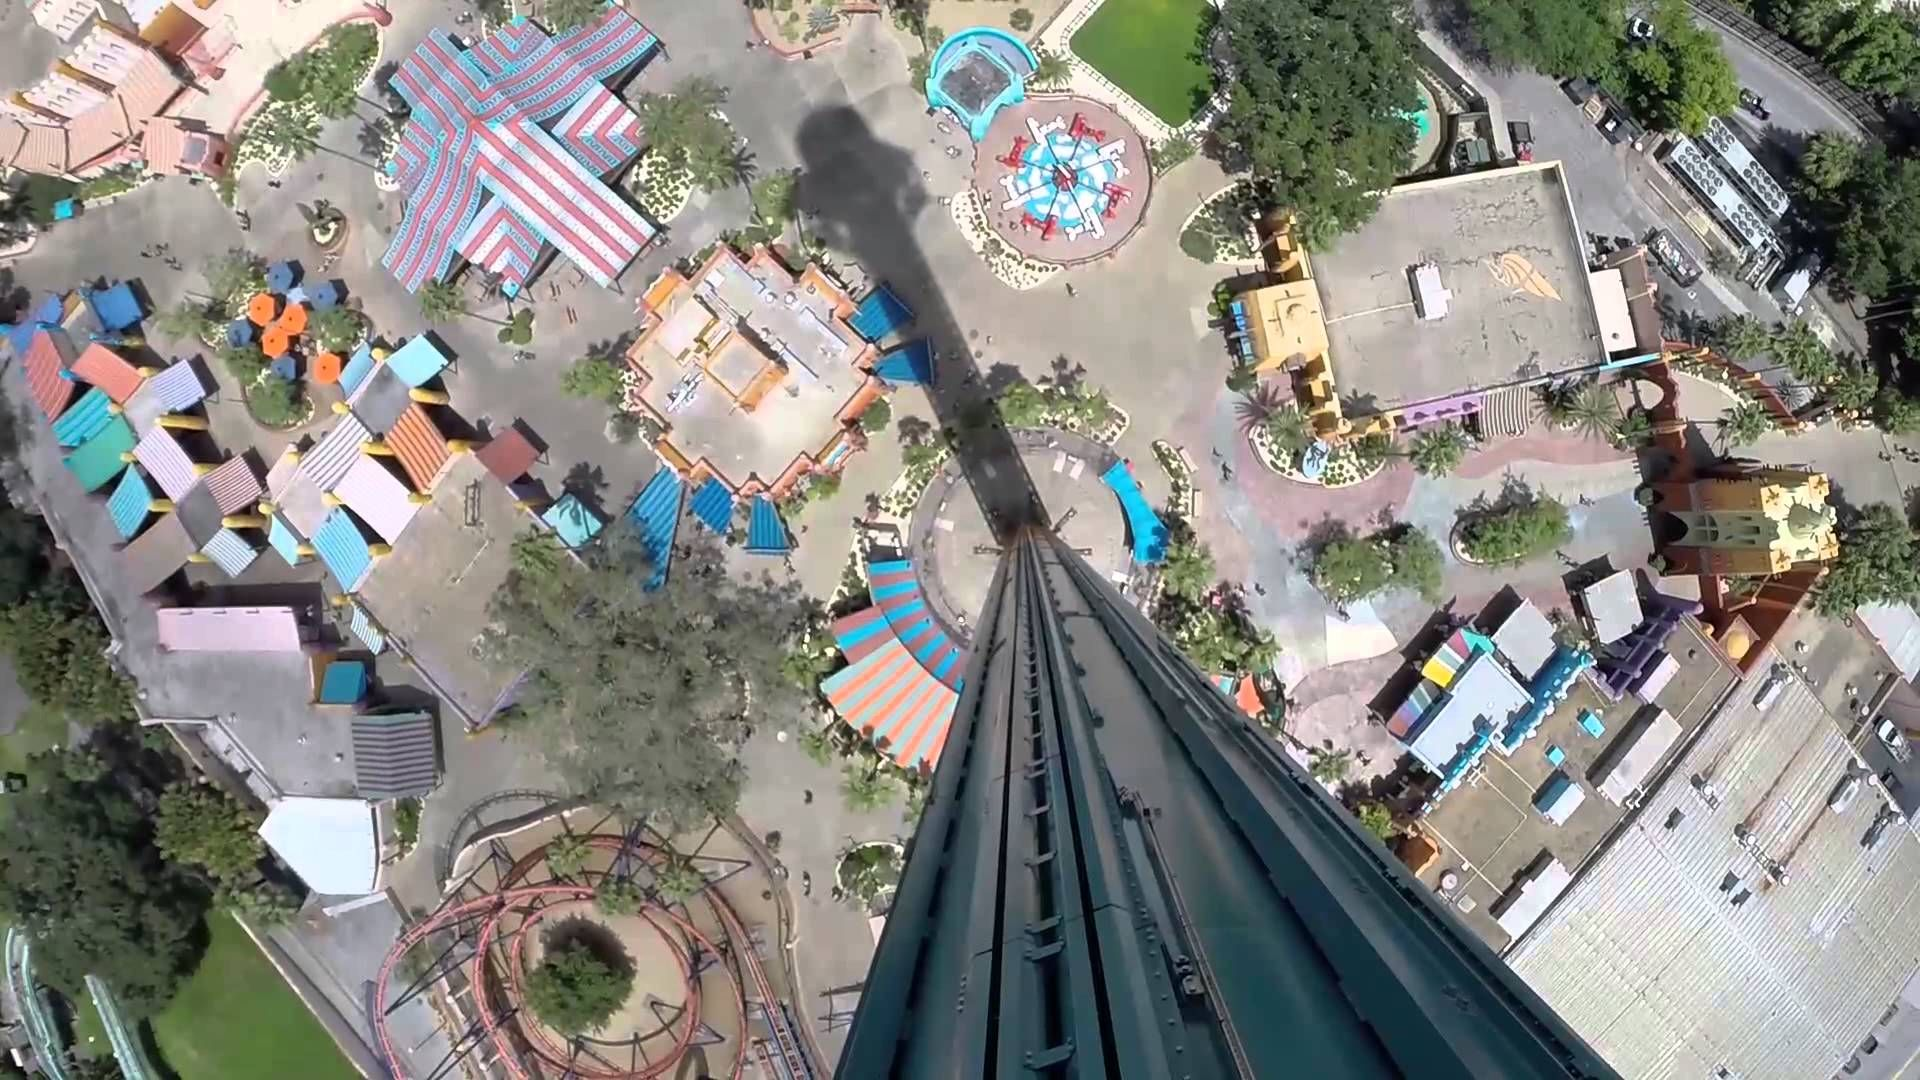 Falcon S Fury 4 Camera Point Of View Busch Gardens Tampa Fl Busch Gardens Tampa Busch Gardens Busch Gardens Tampa Bay